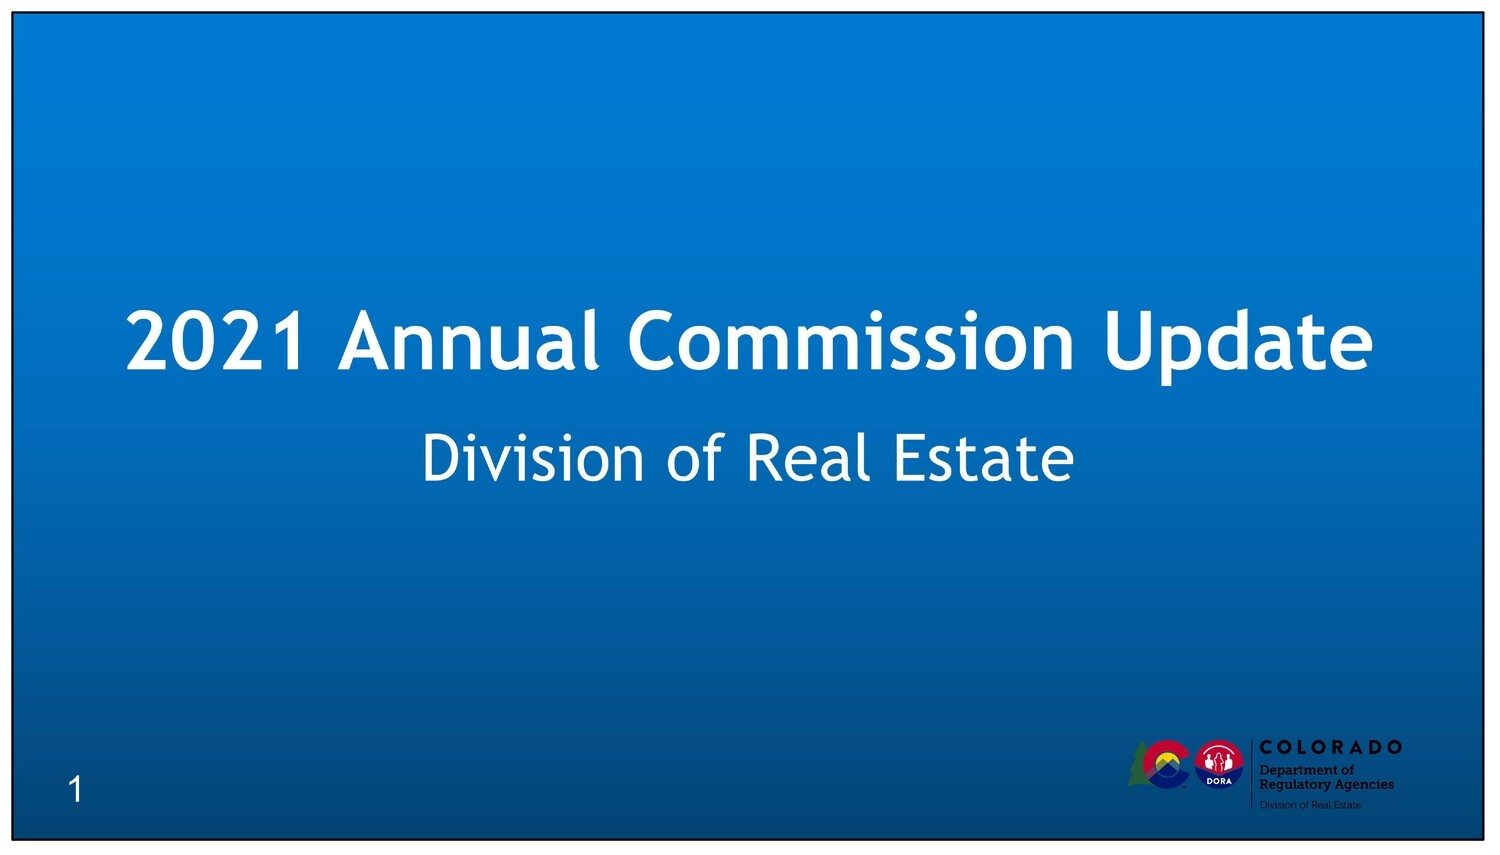 2021 Annual Commission Update